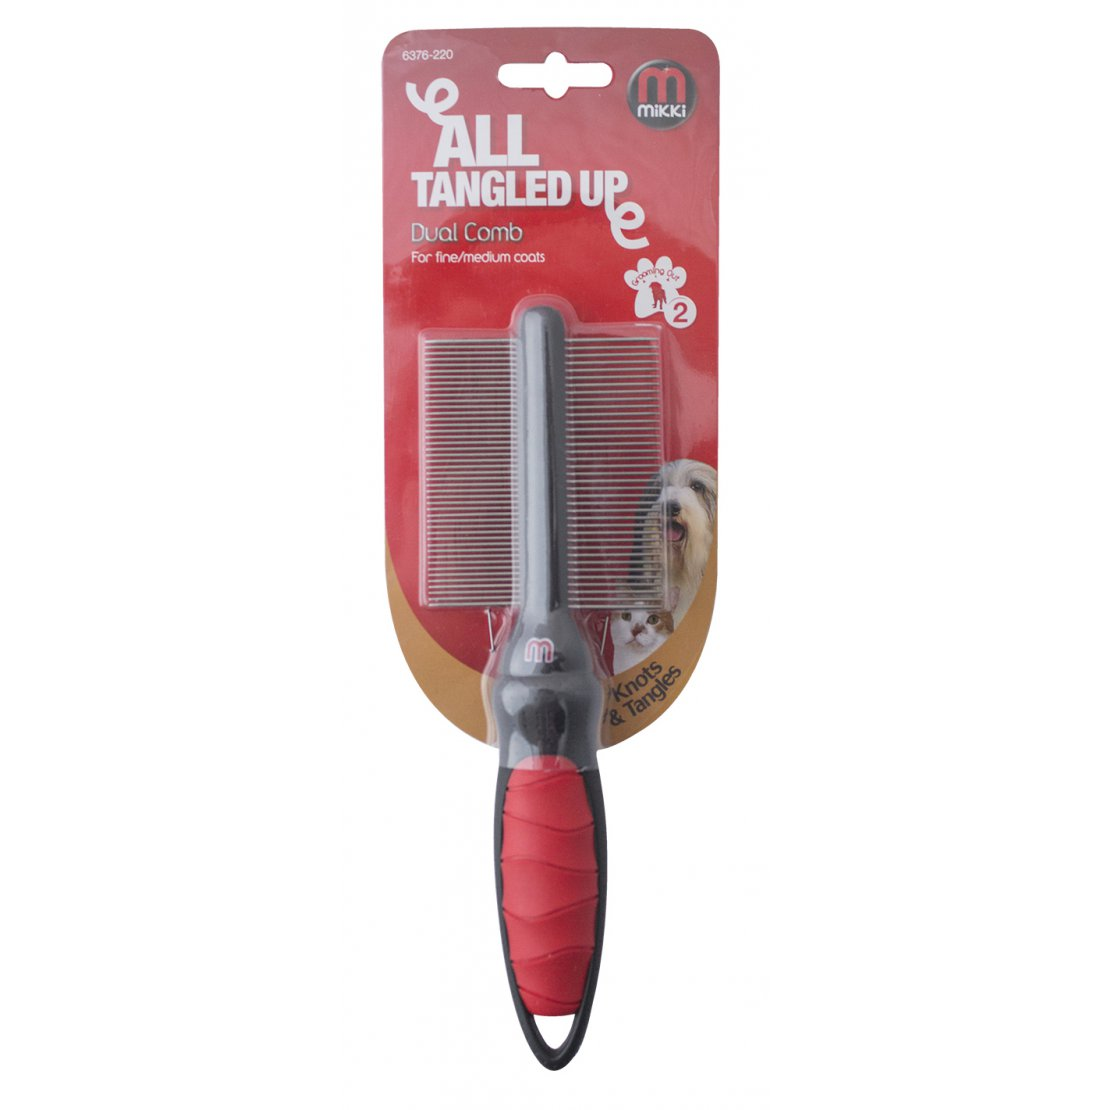 Mikki Dual Comb for Fine and Medium Coats - Pica's Pets